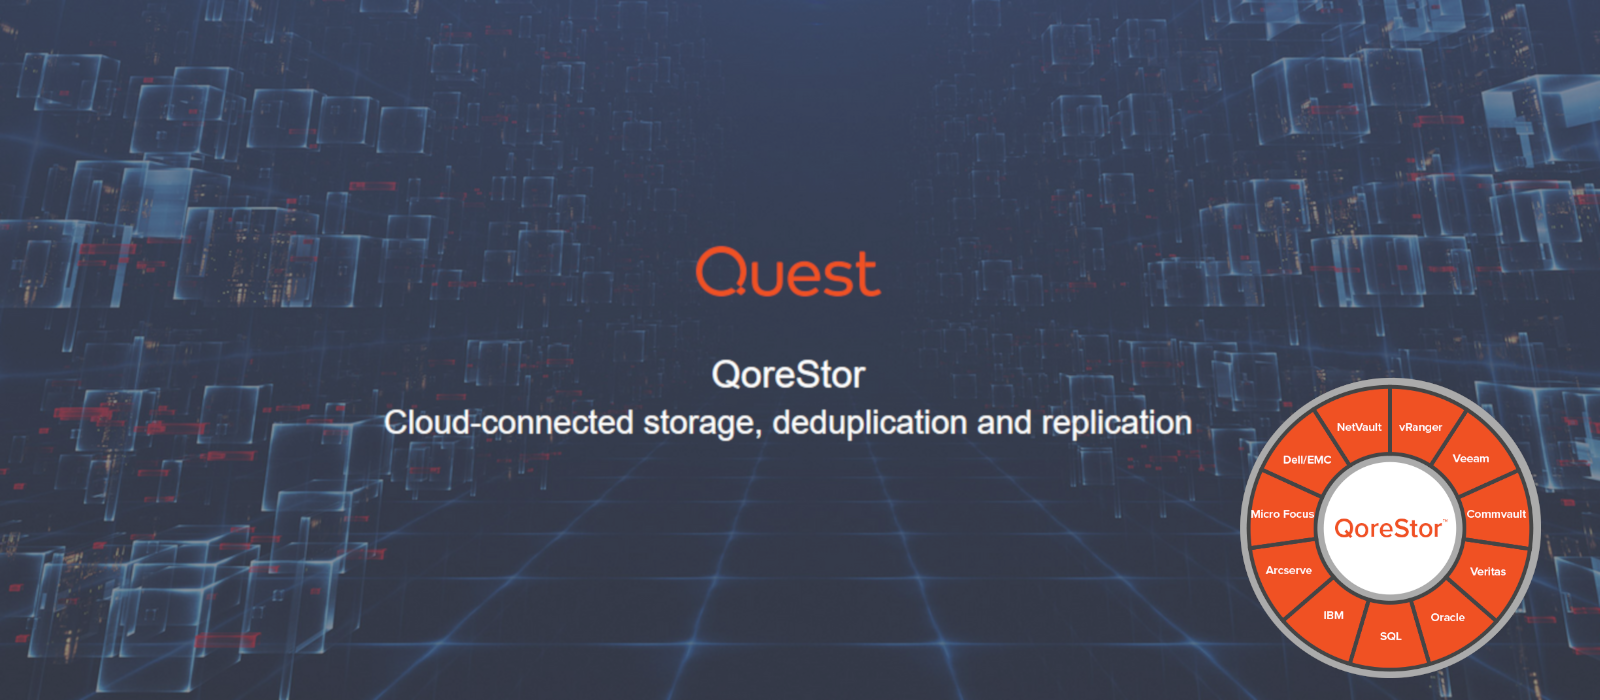 Quest QoreStor